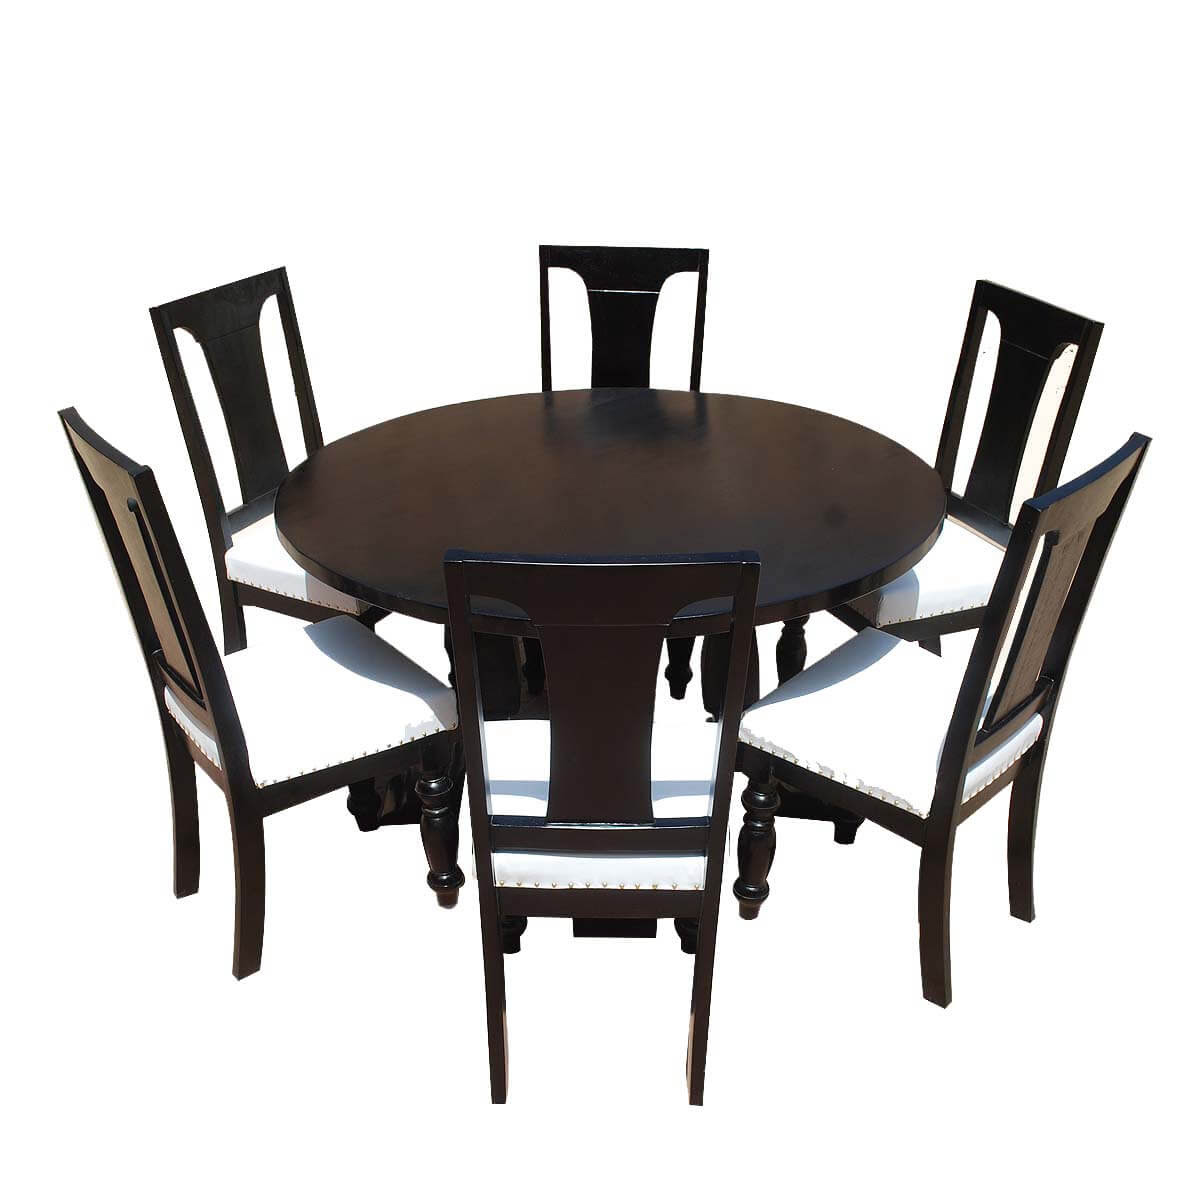 California Solid Wood & Leather 7p Round Dining Room Set